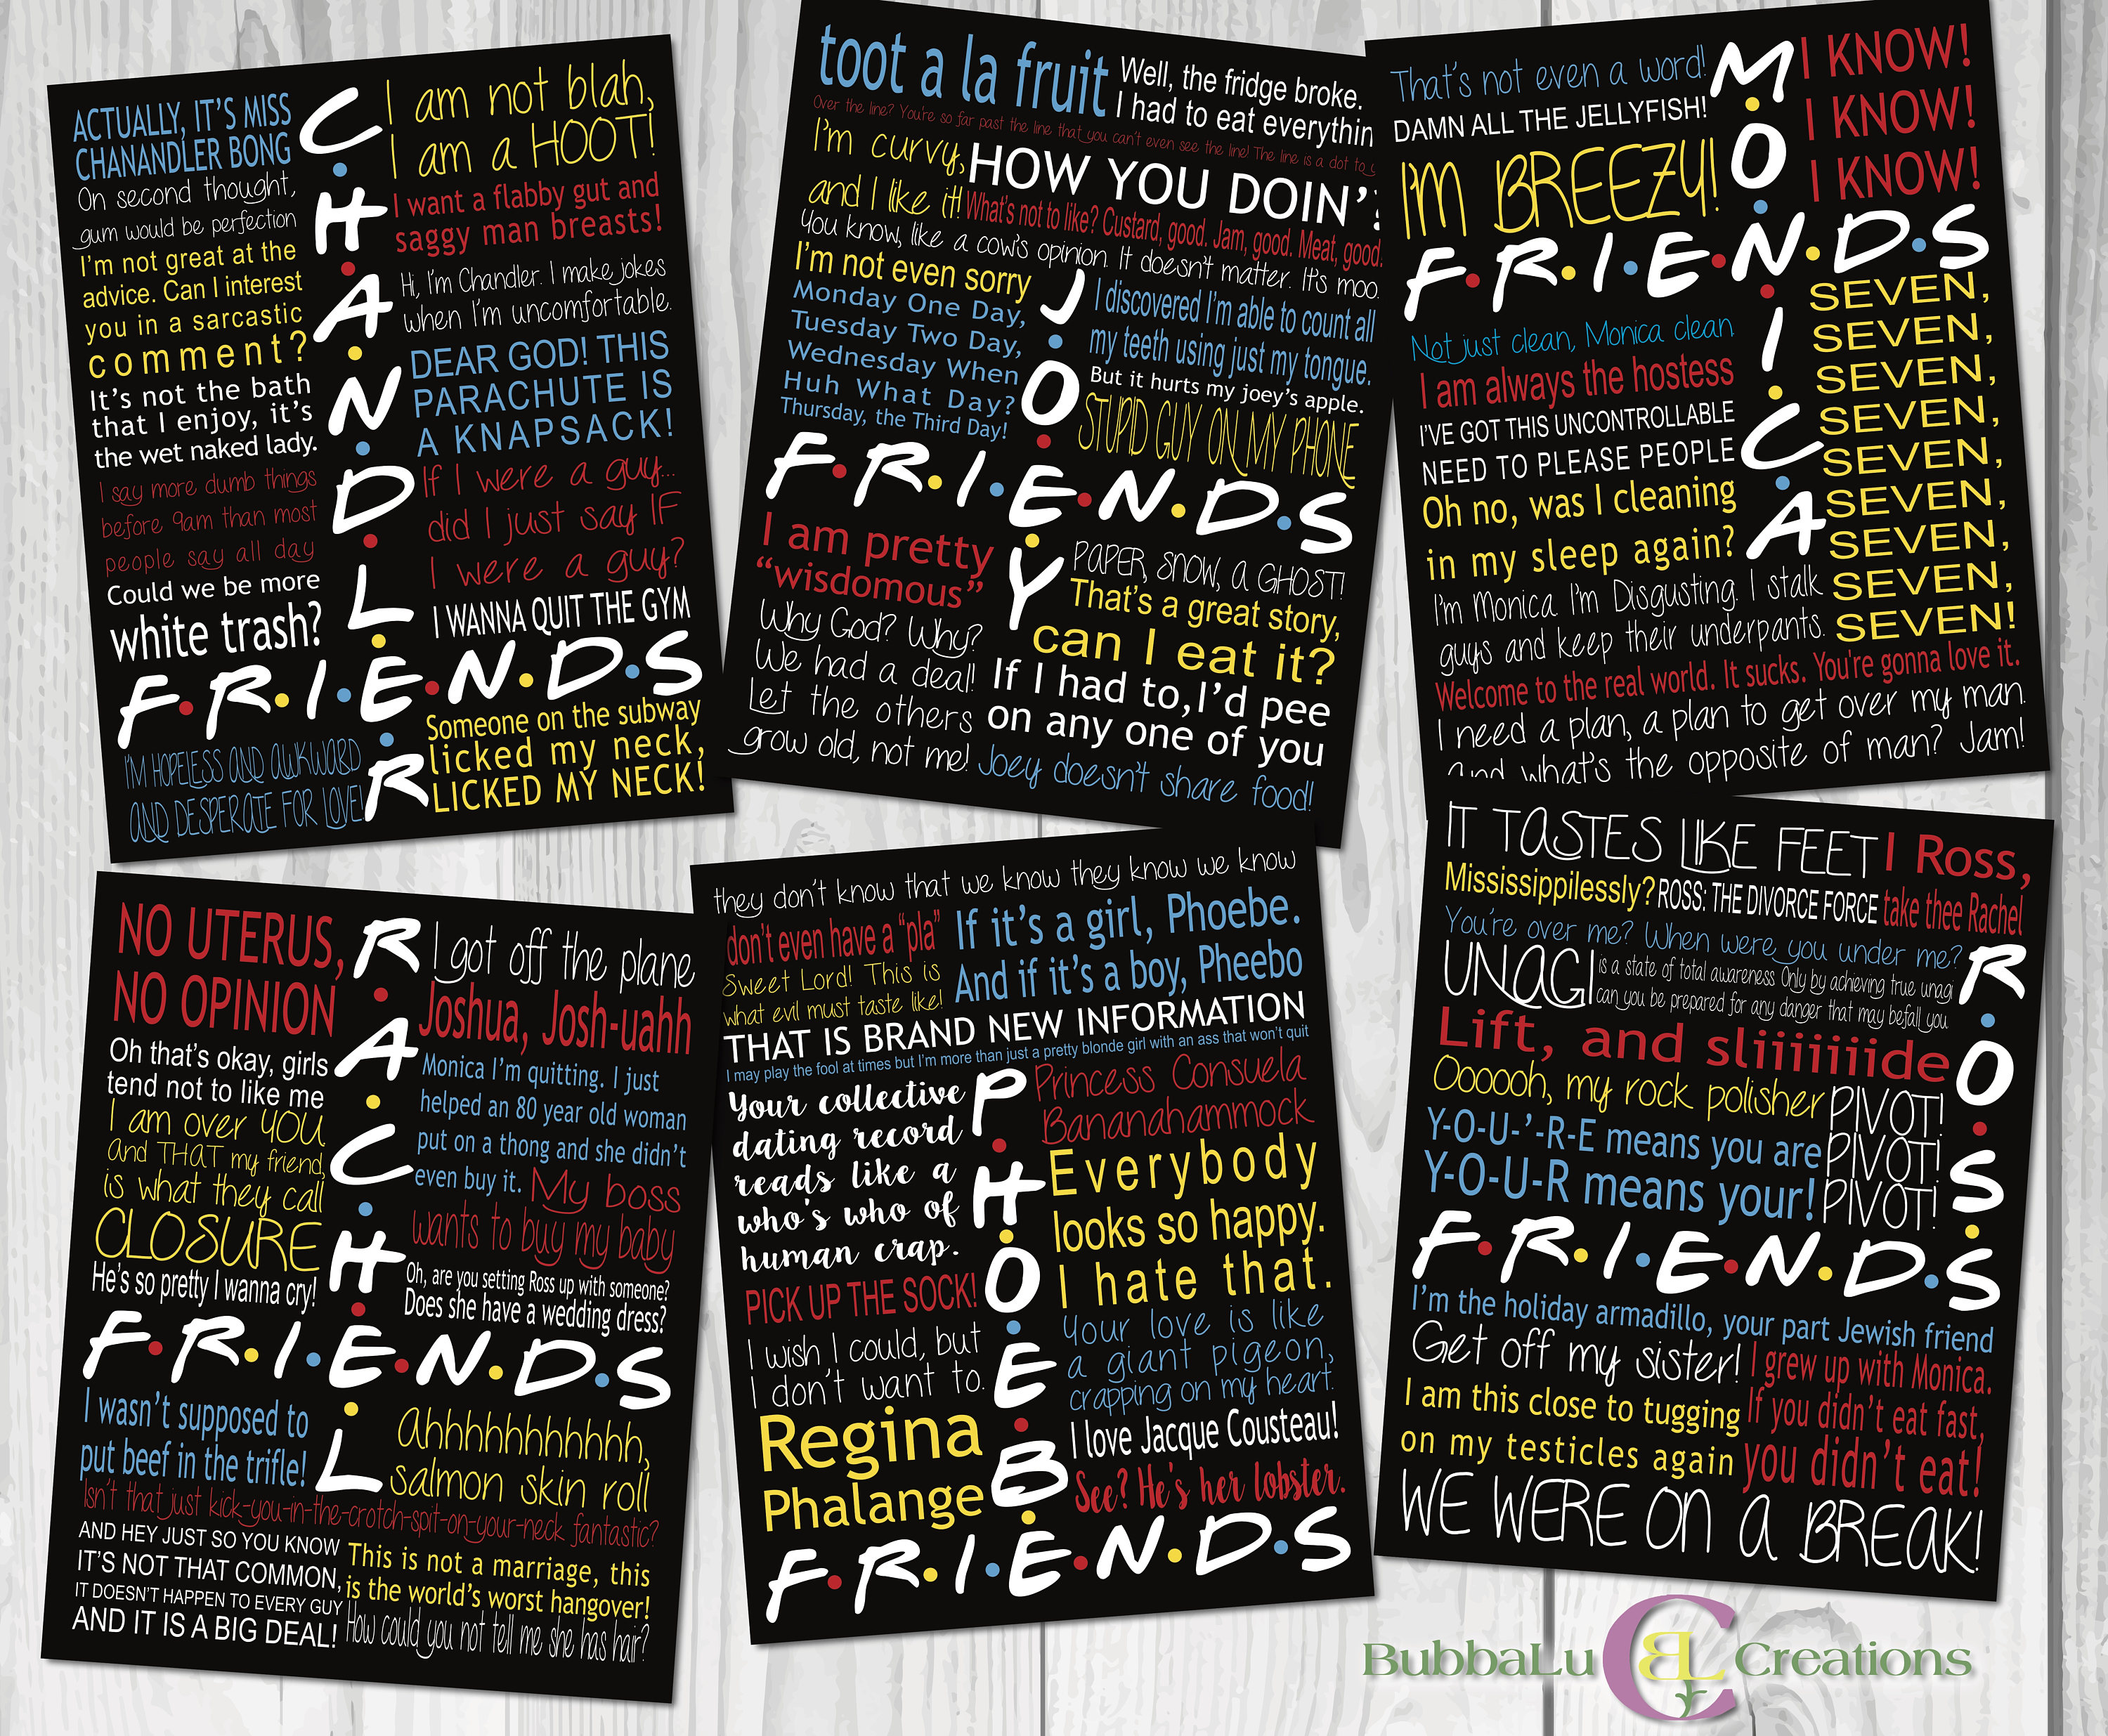 Friends TV Show Character Quotes  DIGITAL DOWNLOAD  Friends Show Art   Friends  Friends tv Show  Friends Show Quotes  Friends Show Poster